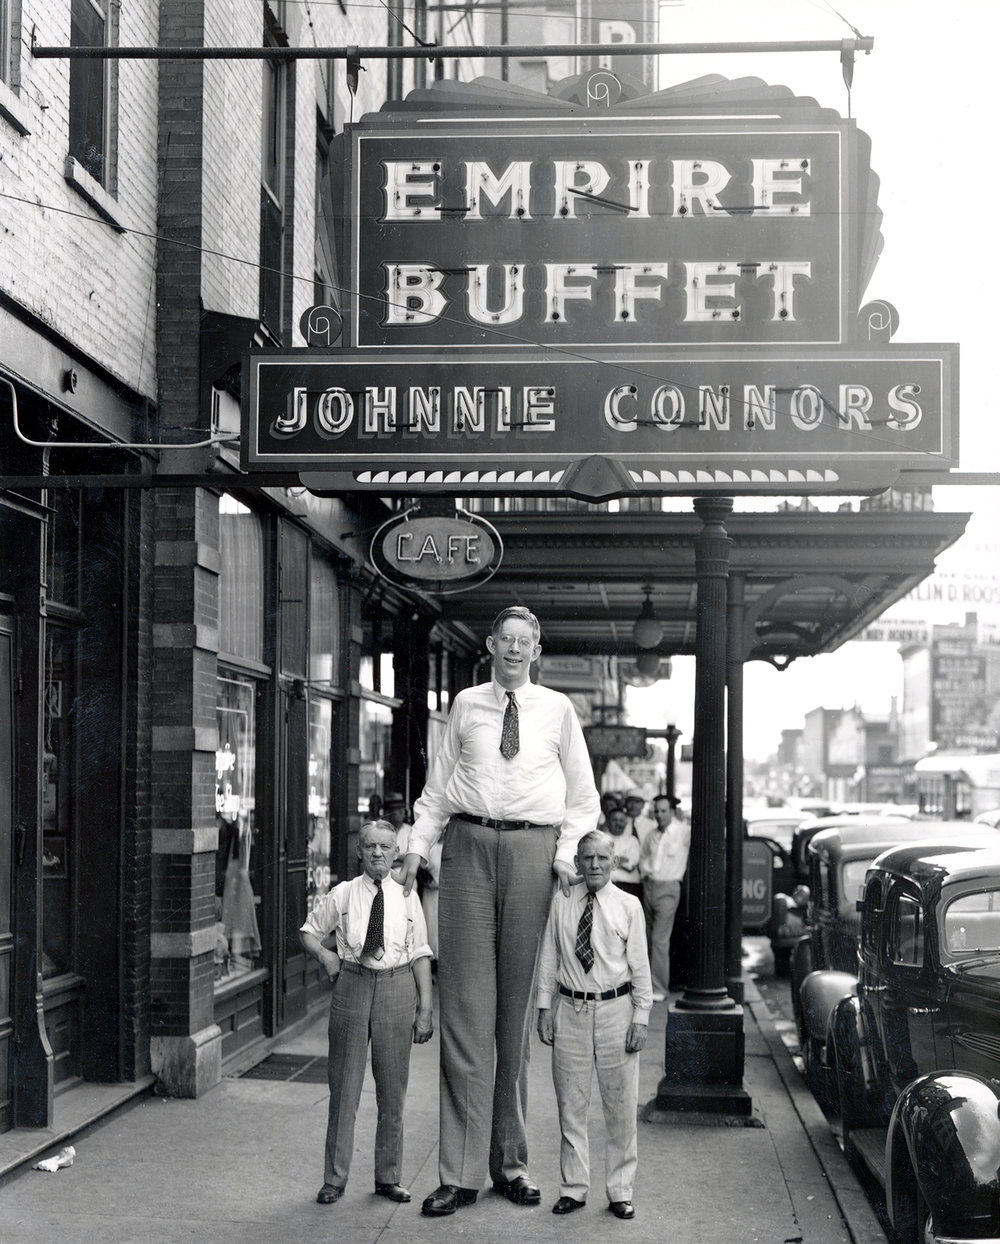 Robert Wadlow with Johnnie Connors, left, owner of the Empire Buffet at 422 E. Jefferson St., and unidentified man, August 1936. Credit: Abraham Lincoln Presidential Library